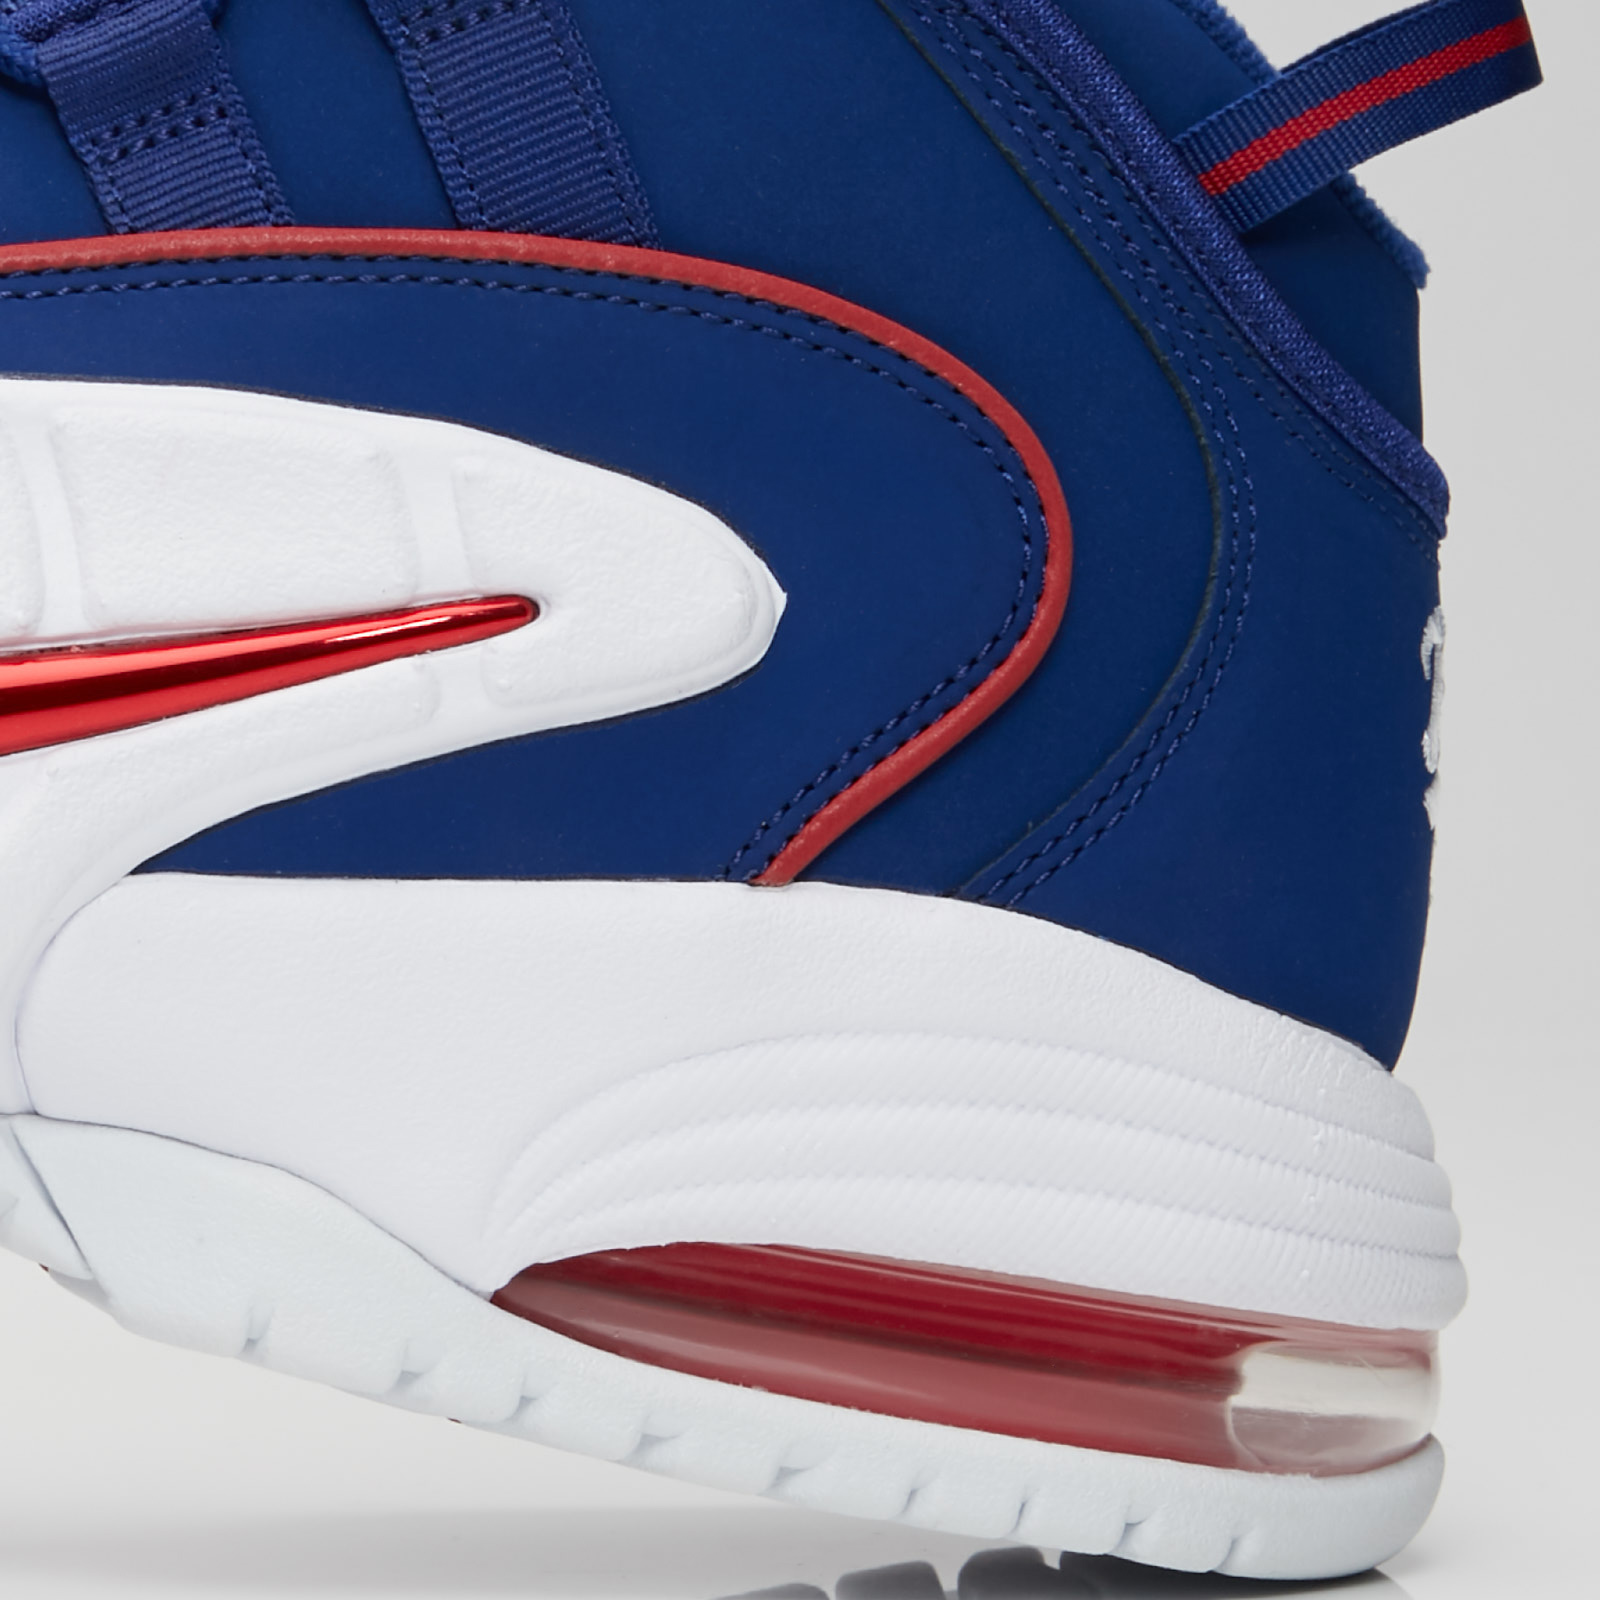 best website 74b87 8be5a Nike Sportswear Air Max Penny - 6. Close